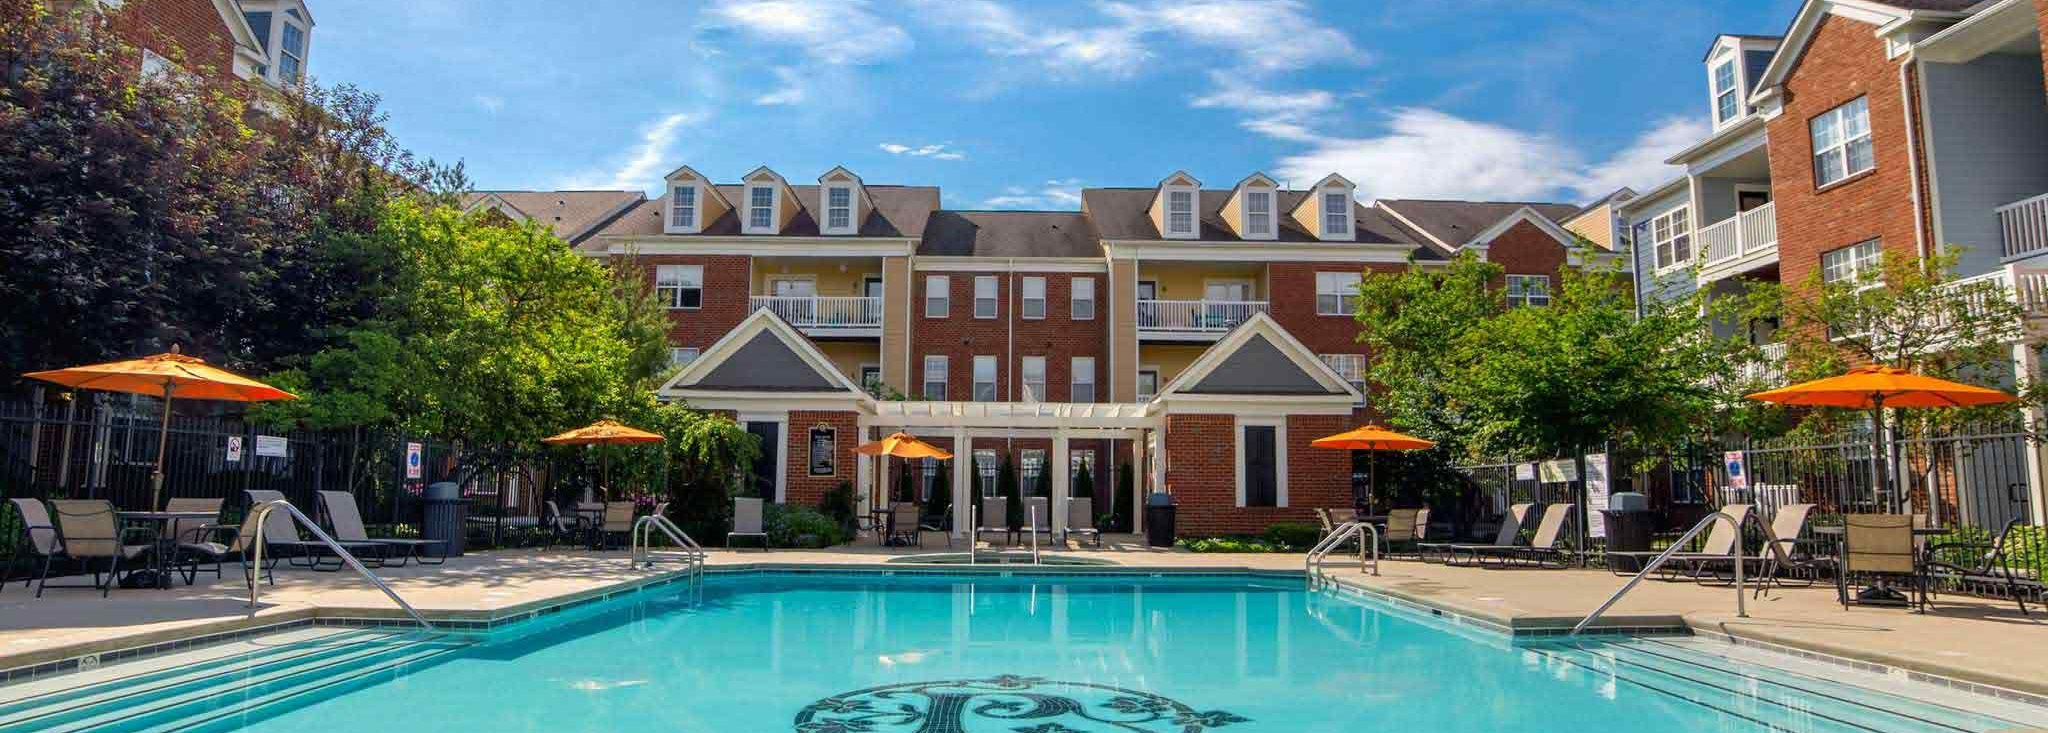 Providence At Old Meridian Apartments Lofts And Townhomes In Carmel In